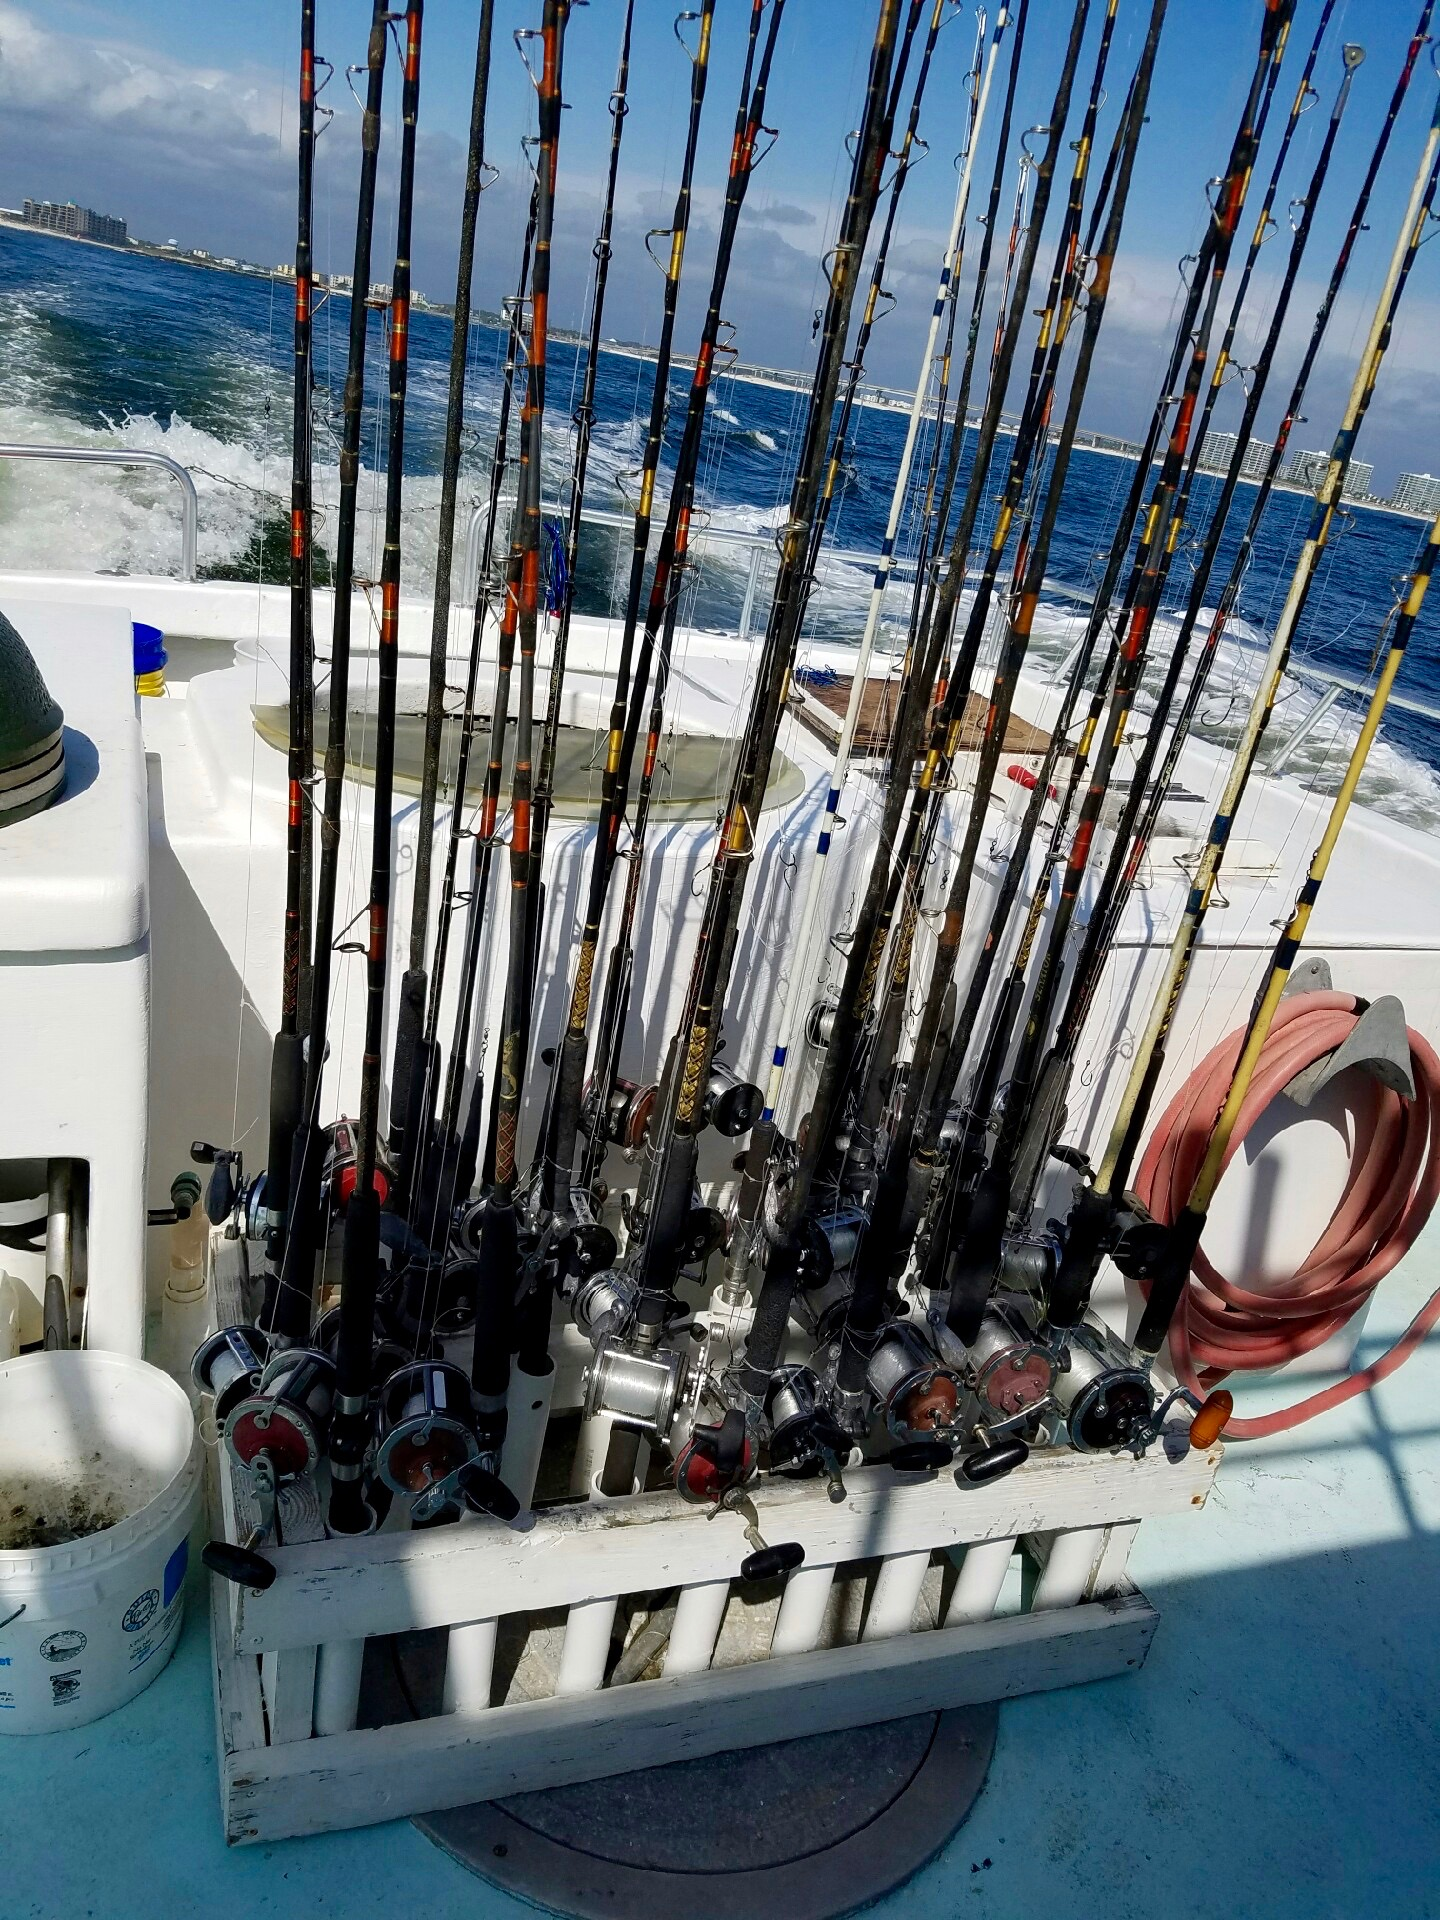 Head Boat Fishing Myrtle Beach The Best Beaches In World